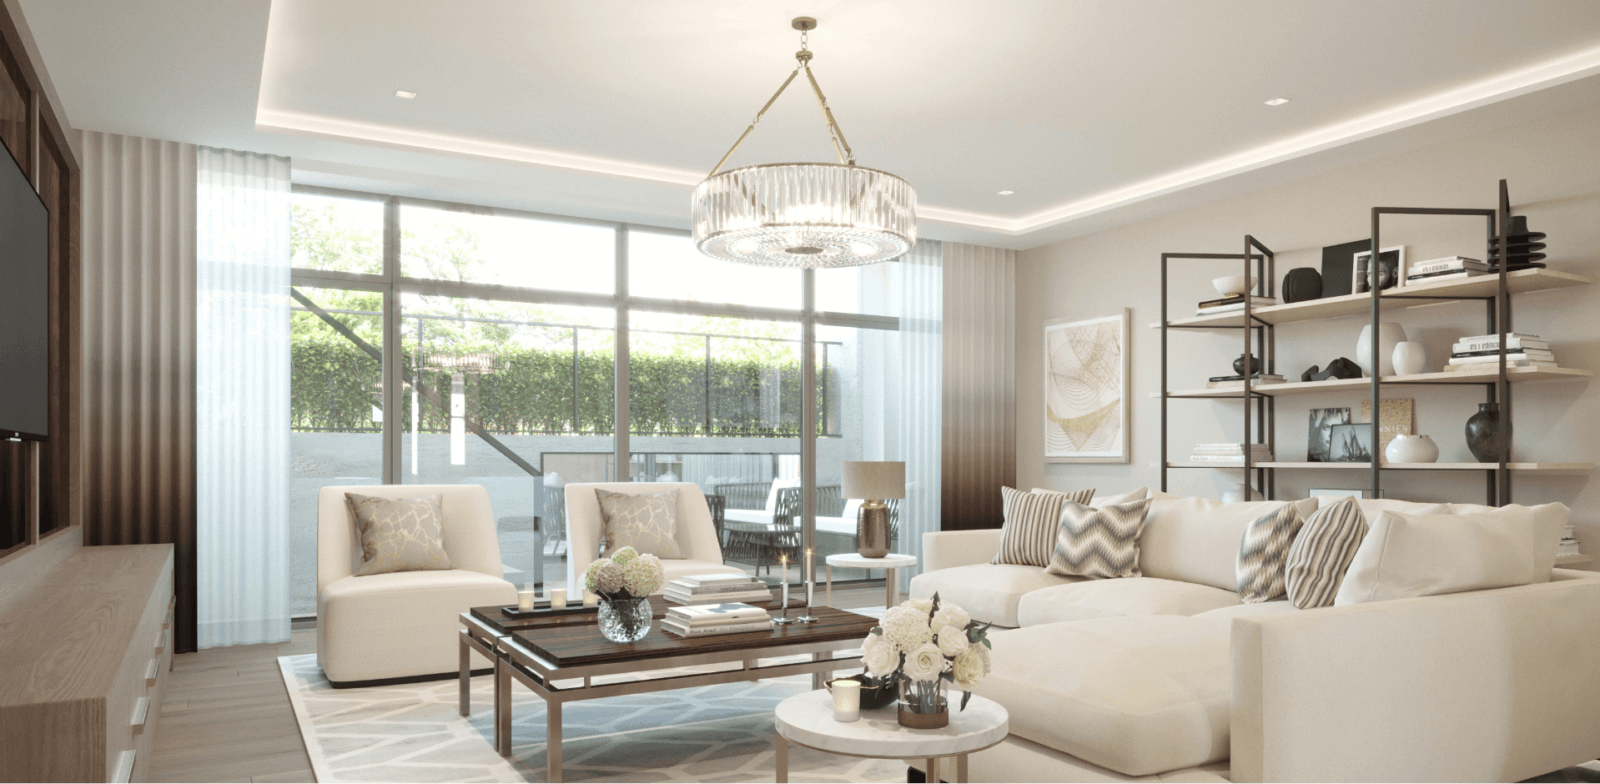 Living room design by Sara Cosgrove Interior Design at the Duplex Townhouses for sale at Lansdowne Place in Ballsbridge